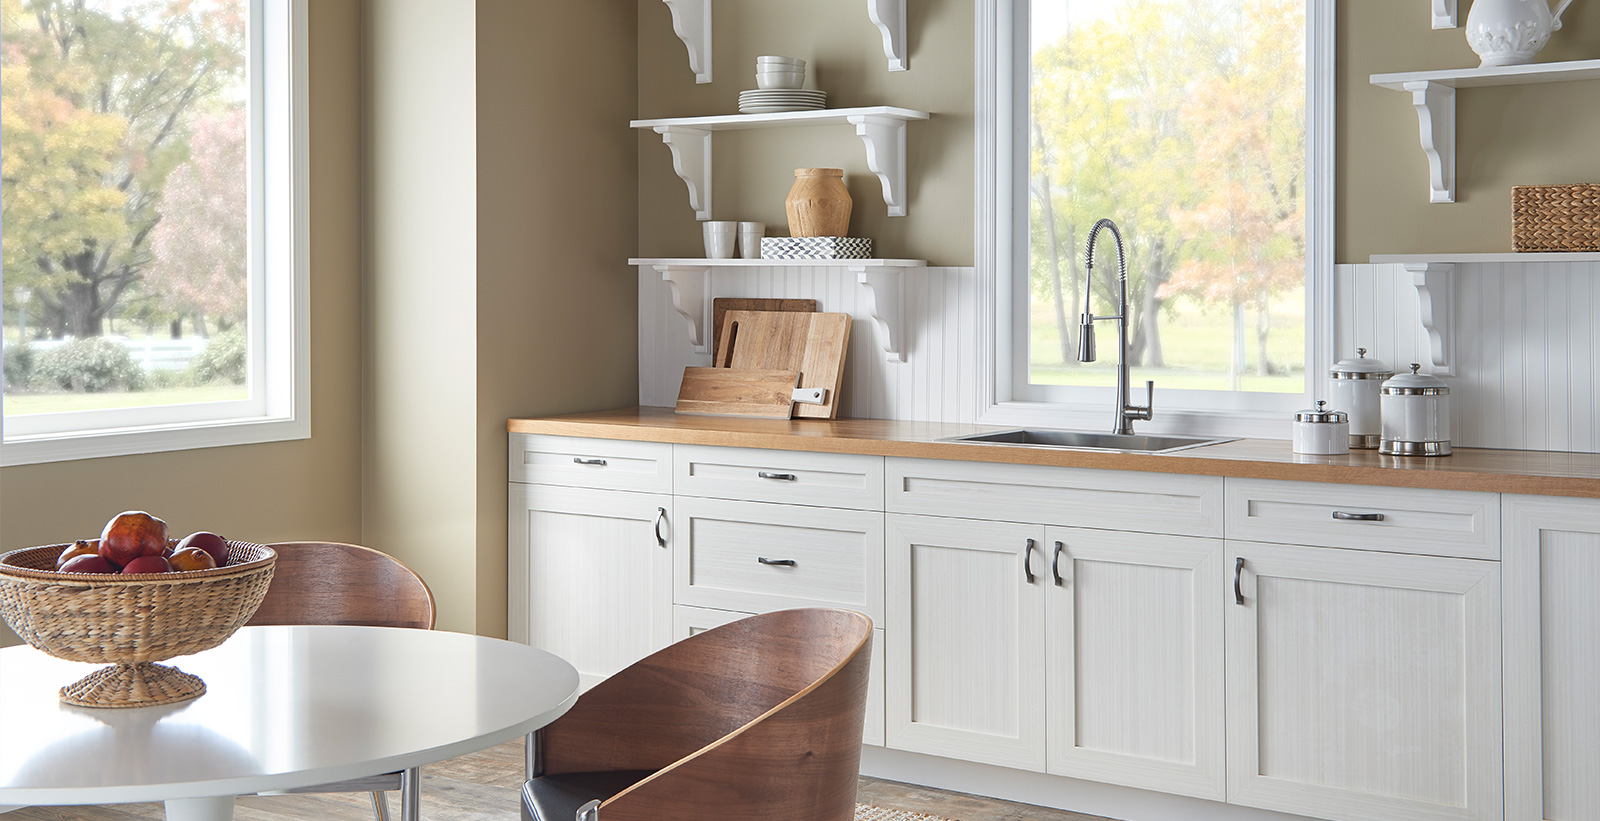 Casual kitchen with tan on wallls, white on cabinets and trim, and wooden counter top